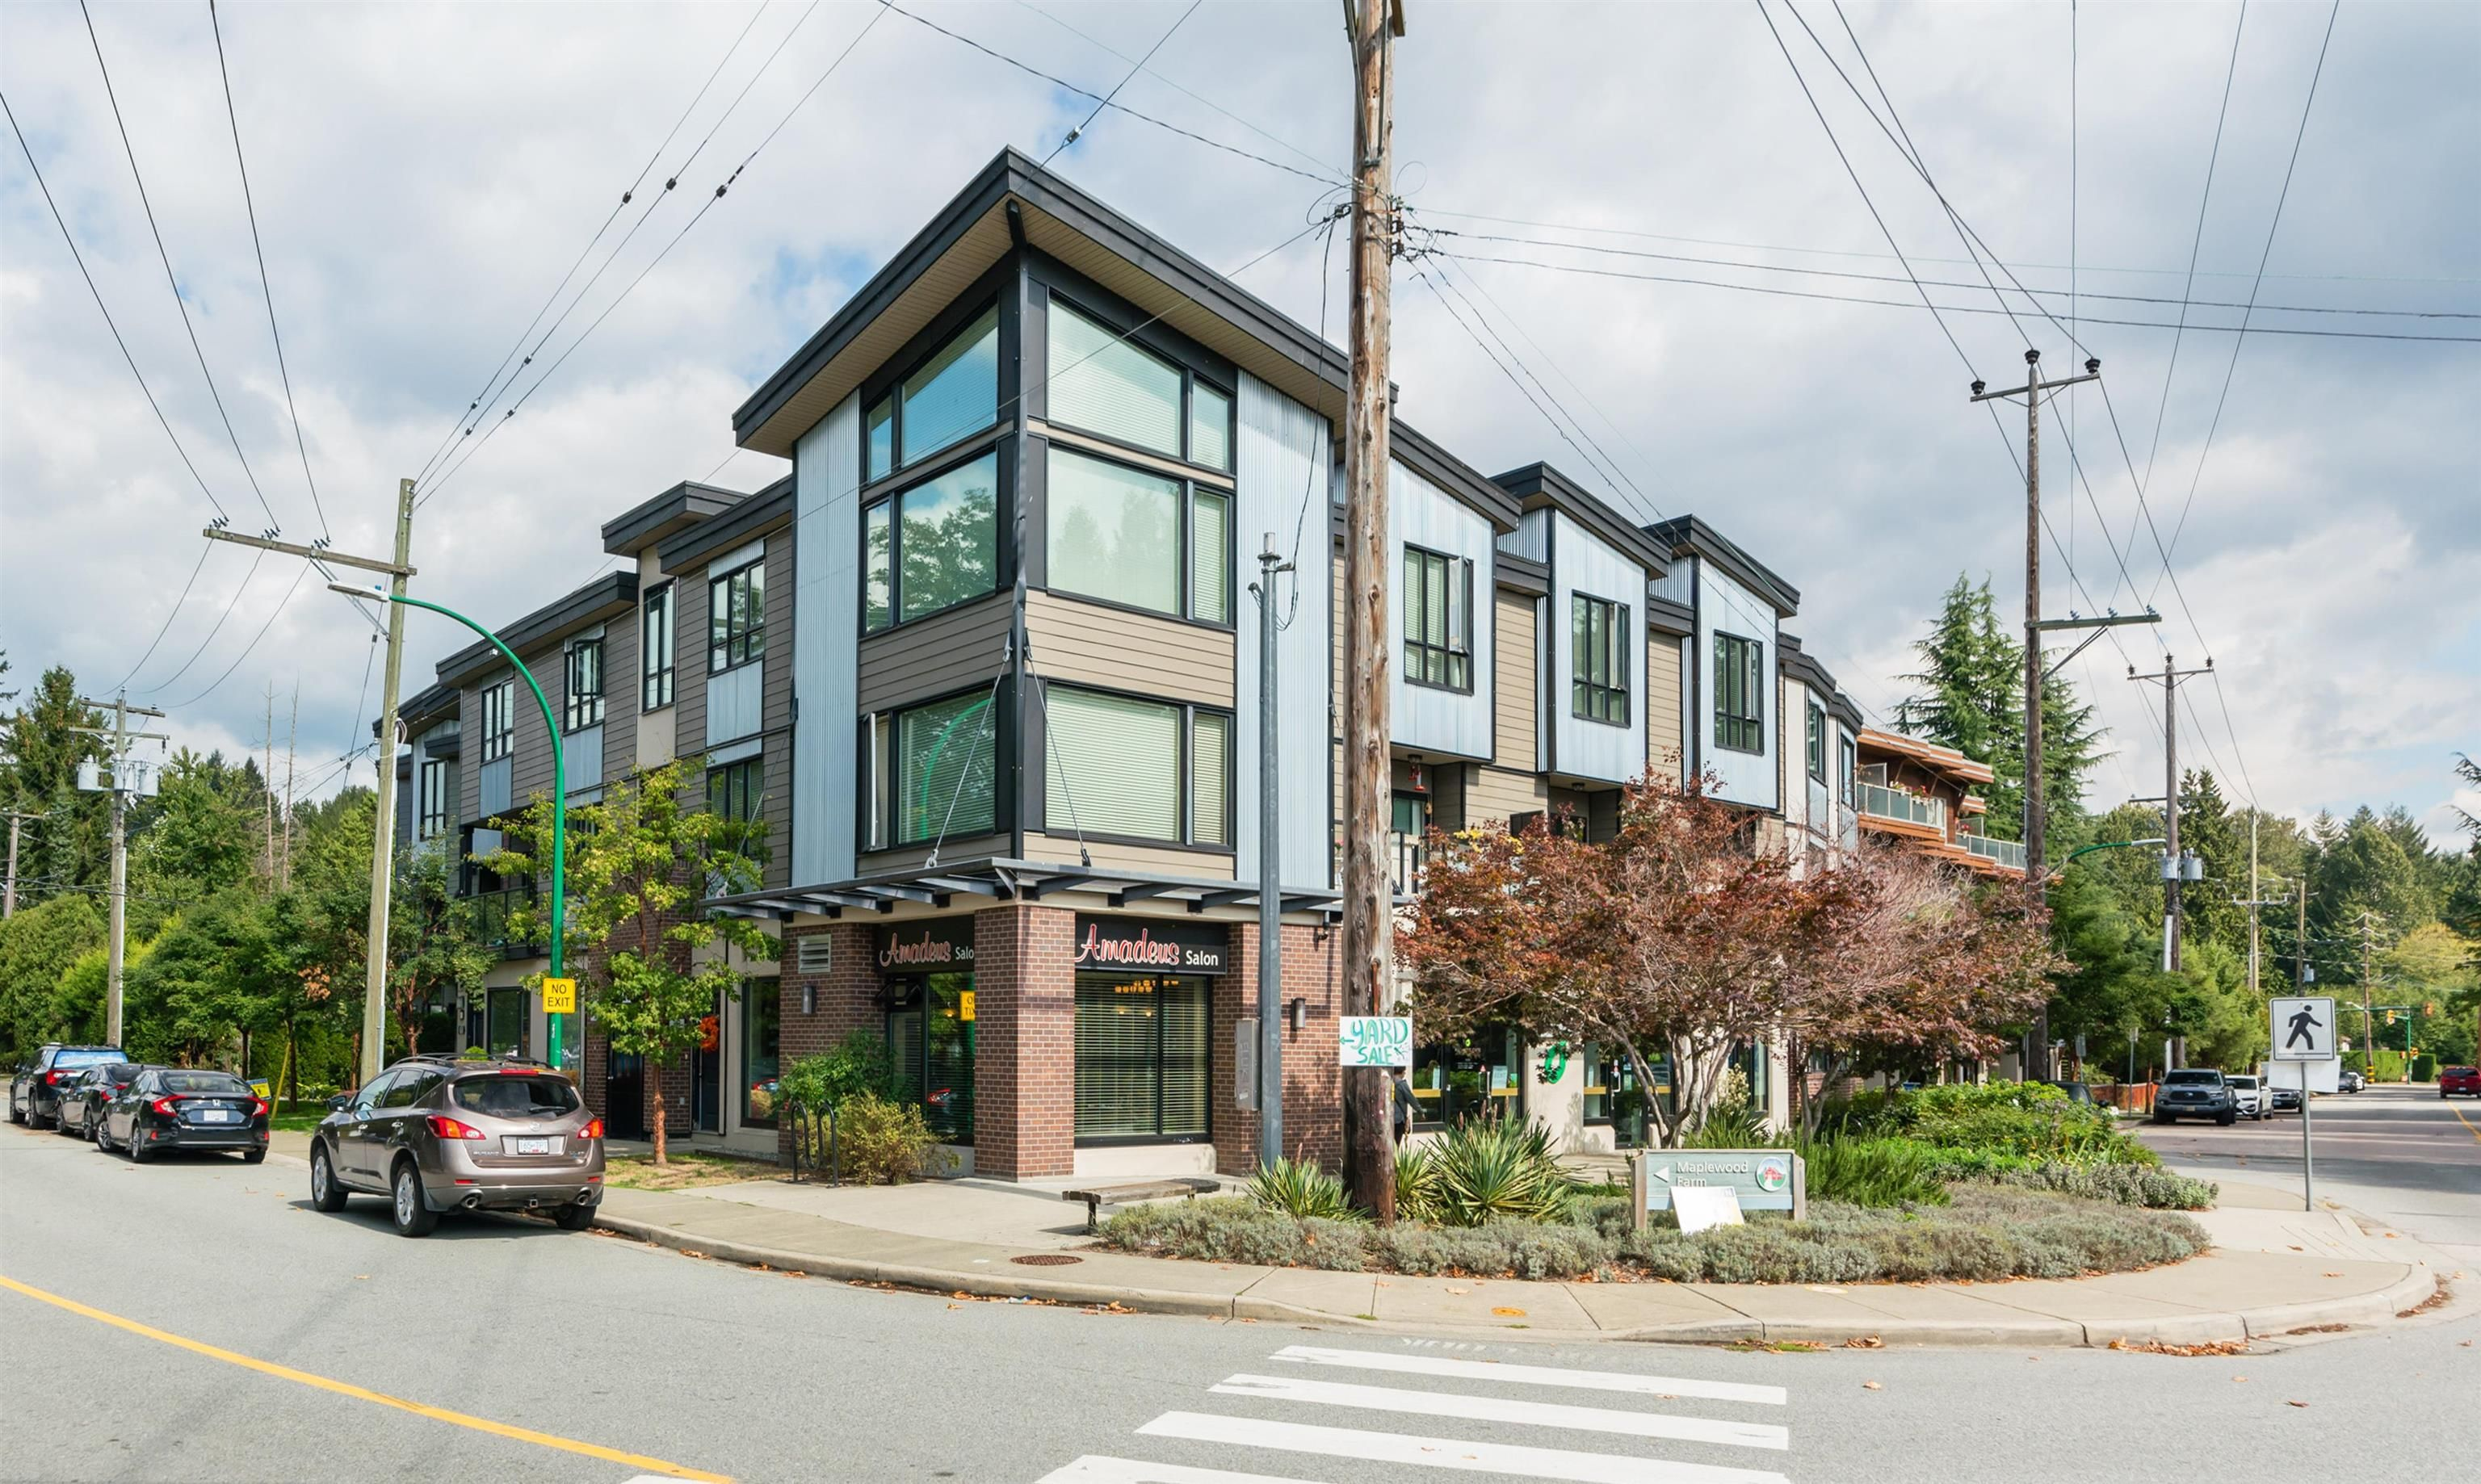 Main Photo: 308 SEYMOUR RIVER Place in Vancouver: Seymour NV Townhouse for sale (North Vancouver)  : MLS®# R2616781